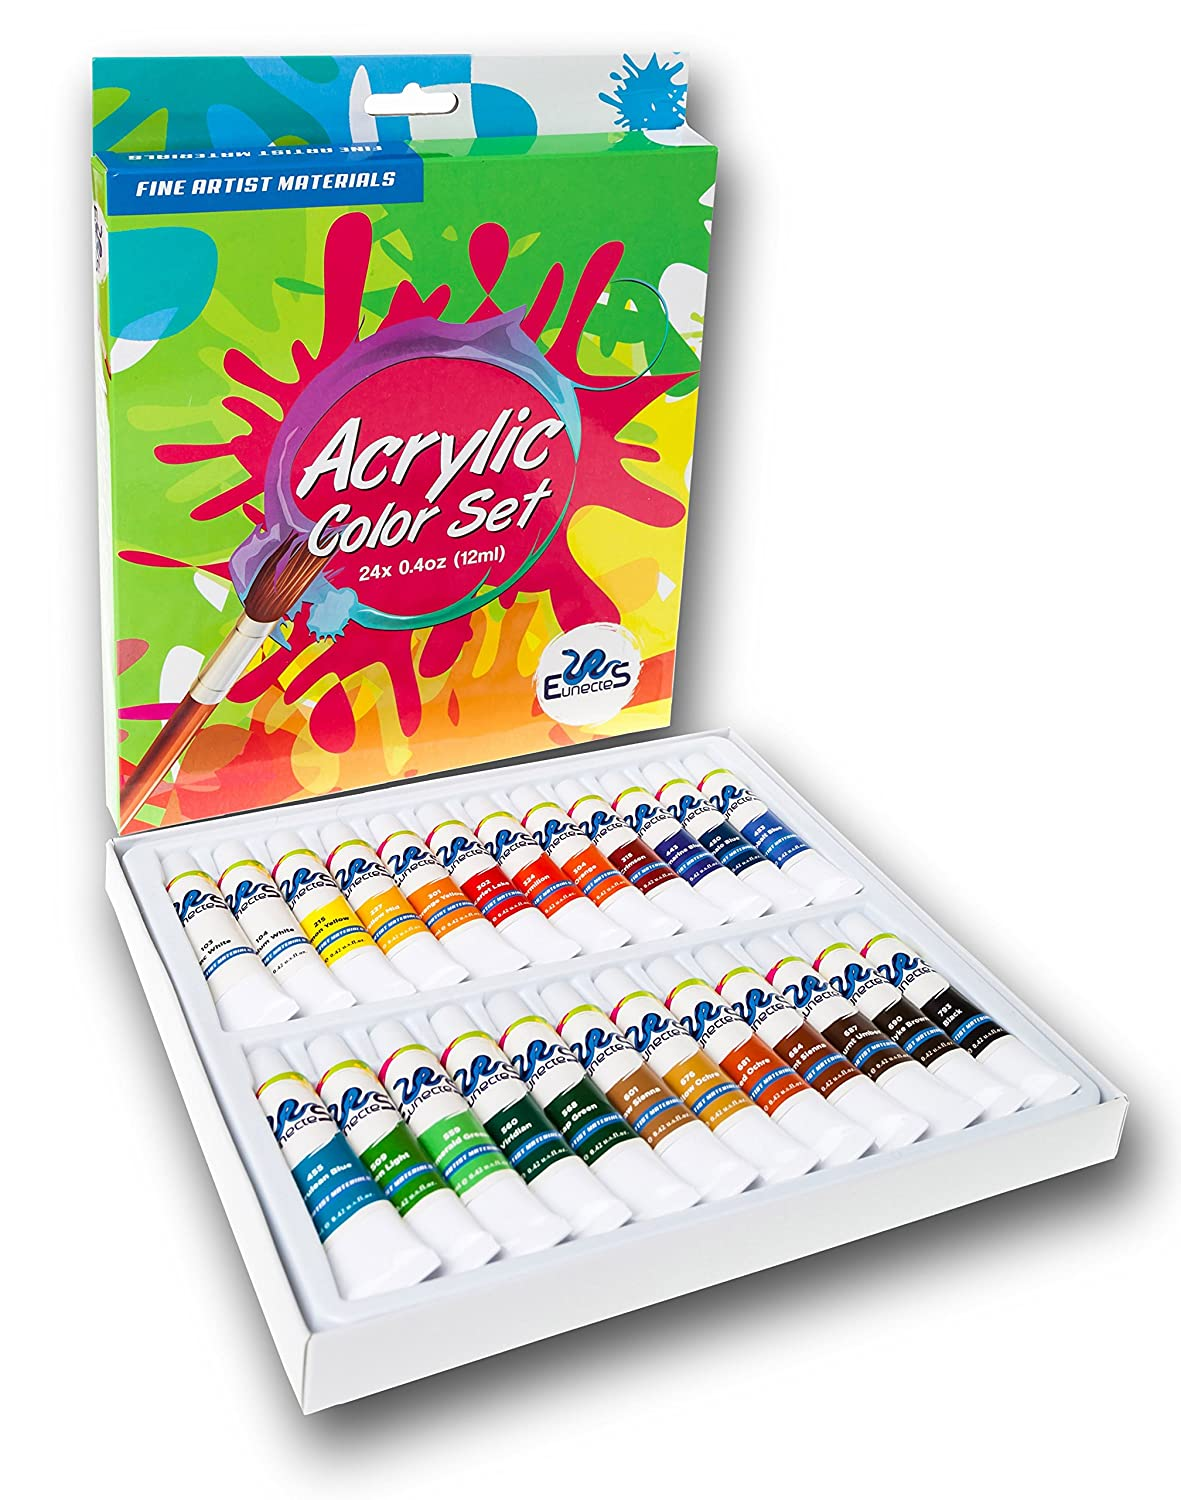 ACRYLIC PAINT SET - Best Artist Kit of 24x12ml - Color Paint - For Kids Adults Beginners and Professionals - Ebook - For Canvas, Wood, Clay, Fabric, Nail Art, Ceramic And Crafts - Money Back Guarantee Eunectes 4336953878